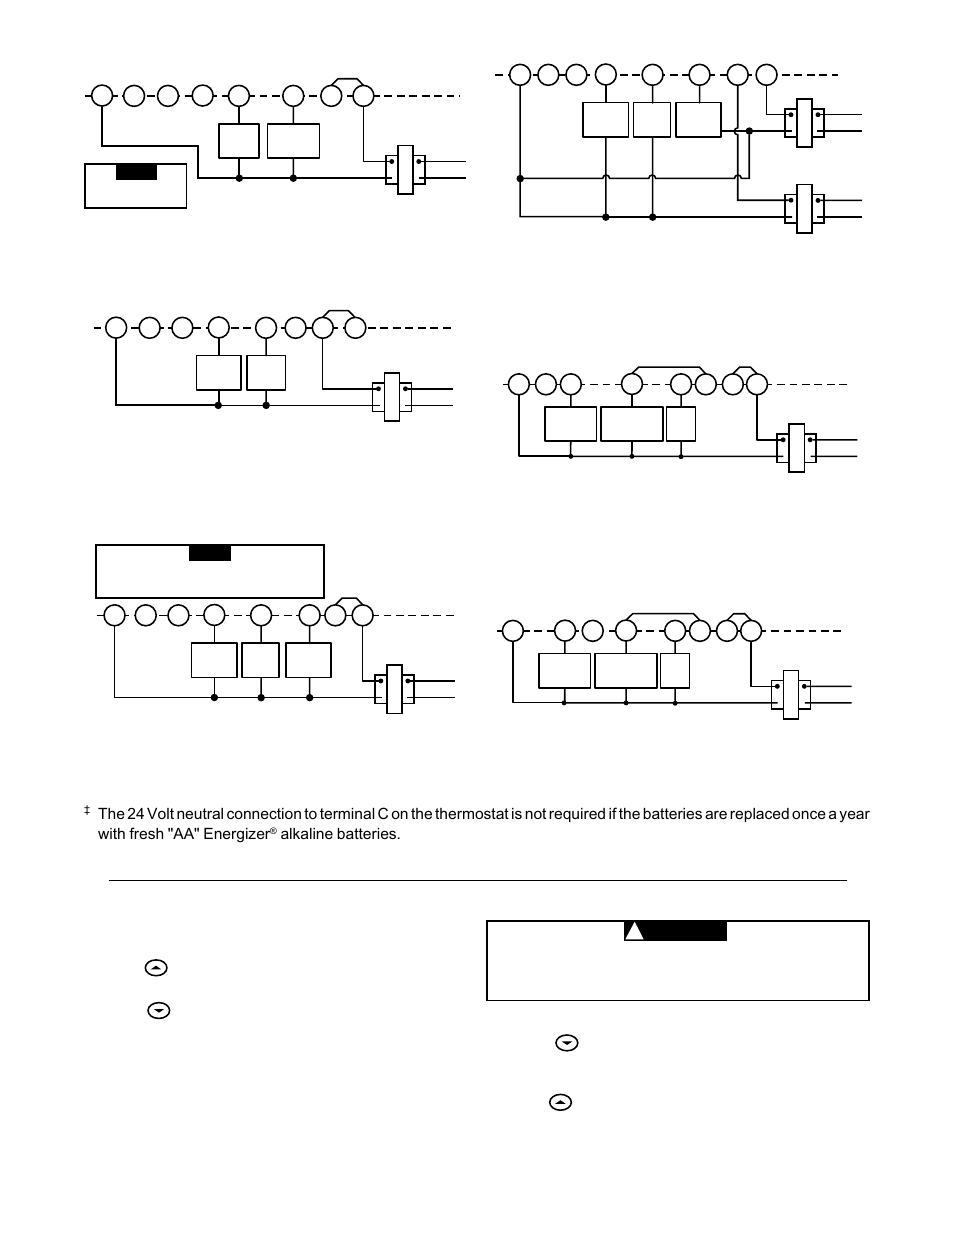 medium resolution of heating system cooling system caution white rodgers 1f86 344 user manual page 3 5